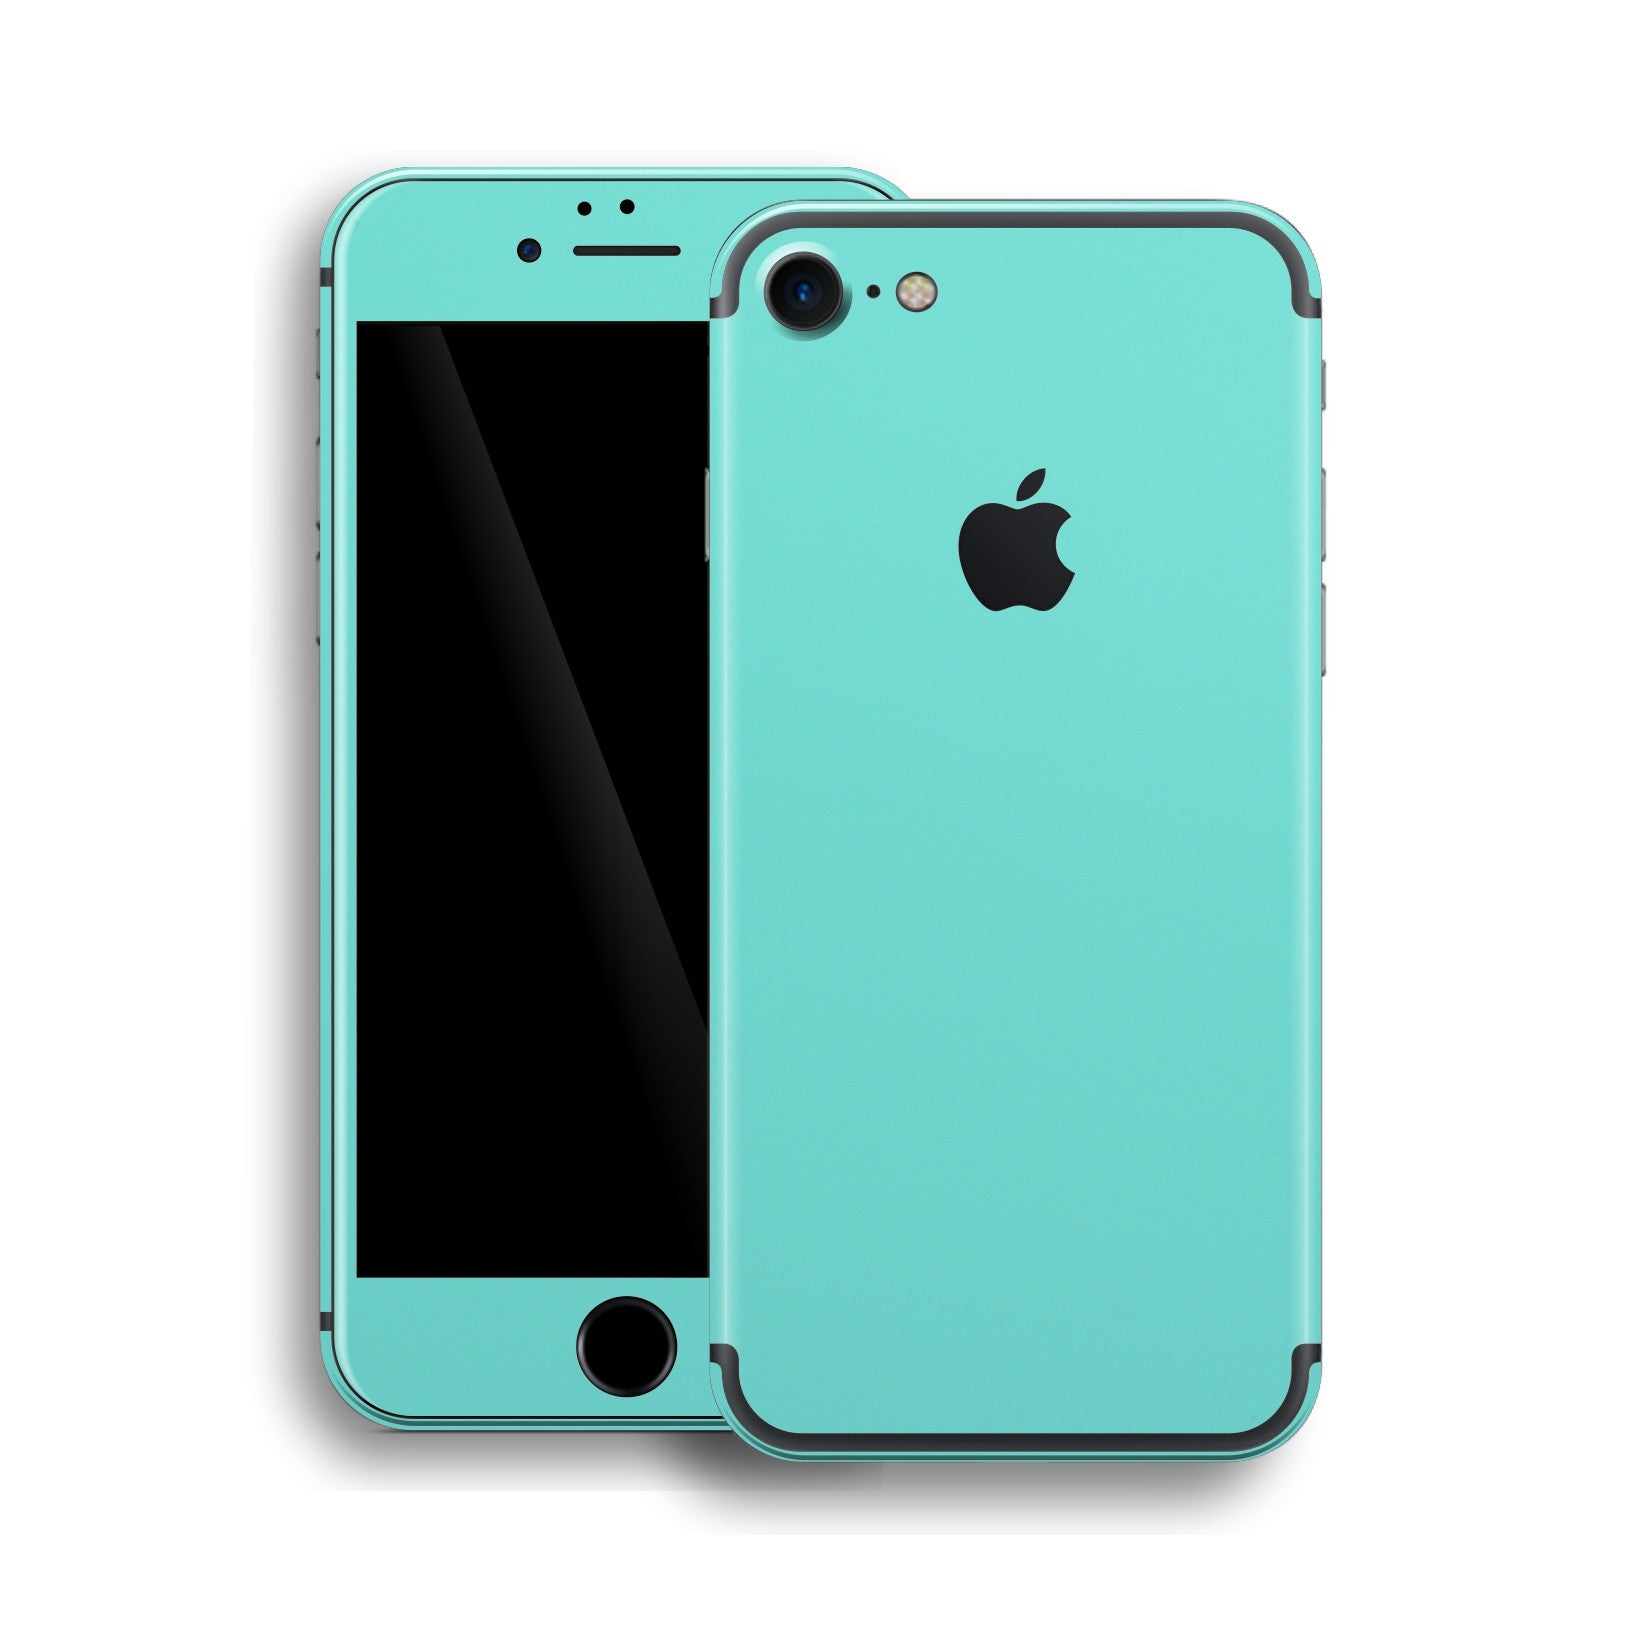 iPhone 7 Mint Matt Matte Skin, Wrap, Decal, Protector, Cover by EasySkinz | EasySkinz.com